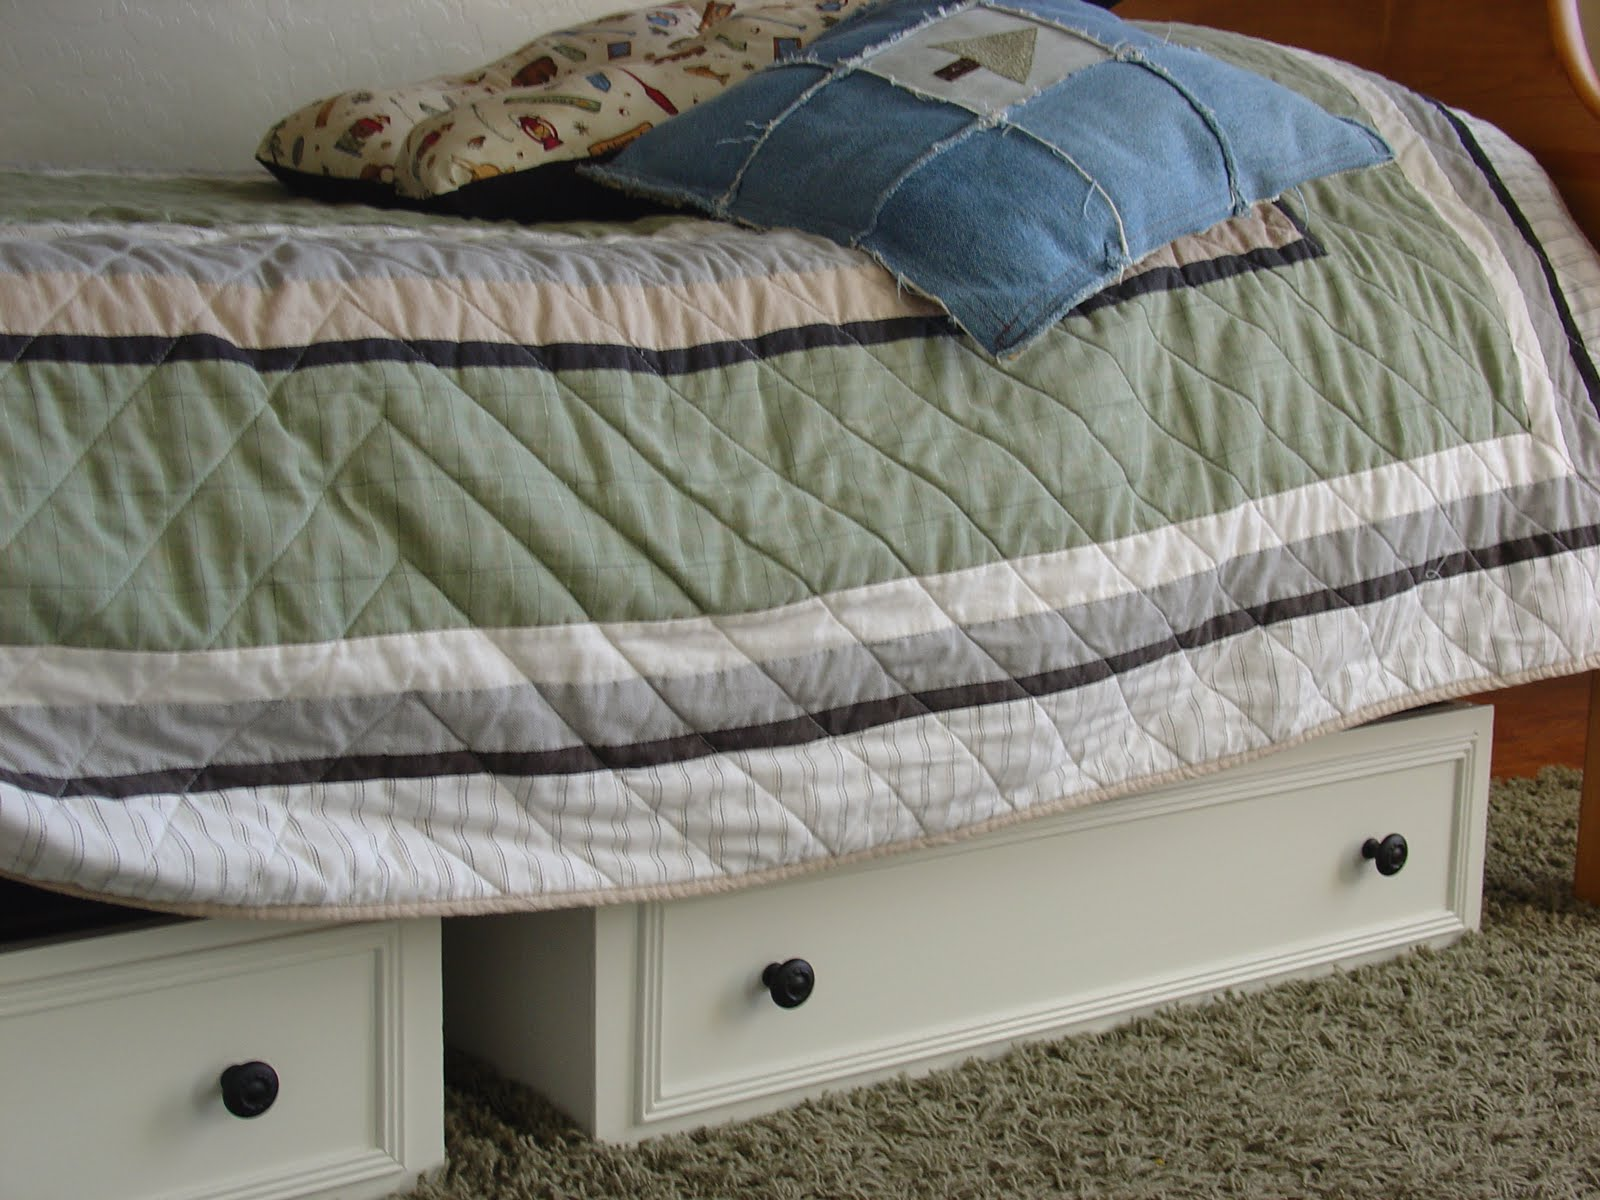 The Sisters Dish Dresser Drawers turned Underbed Storage